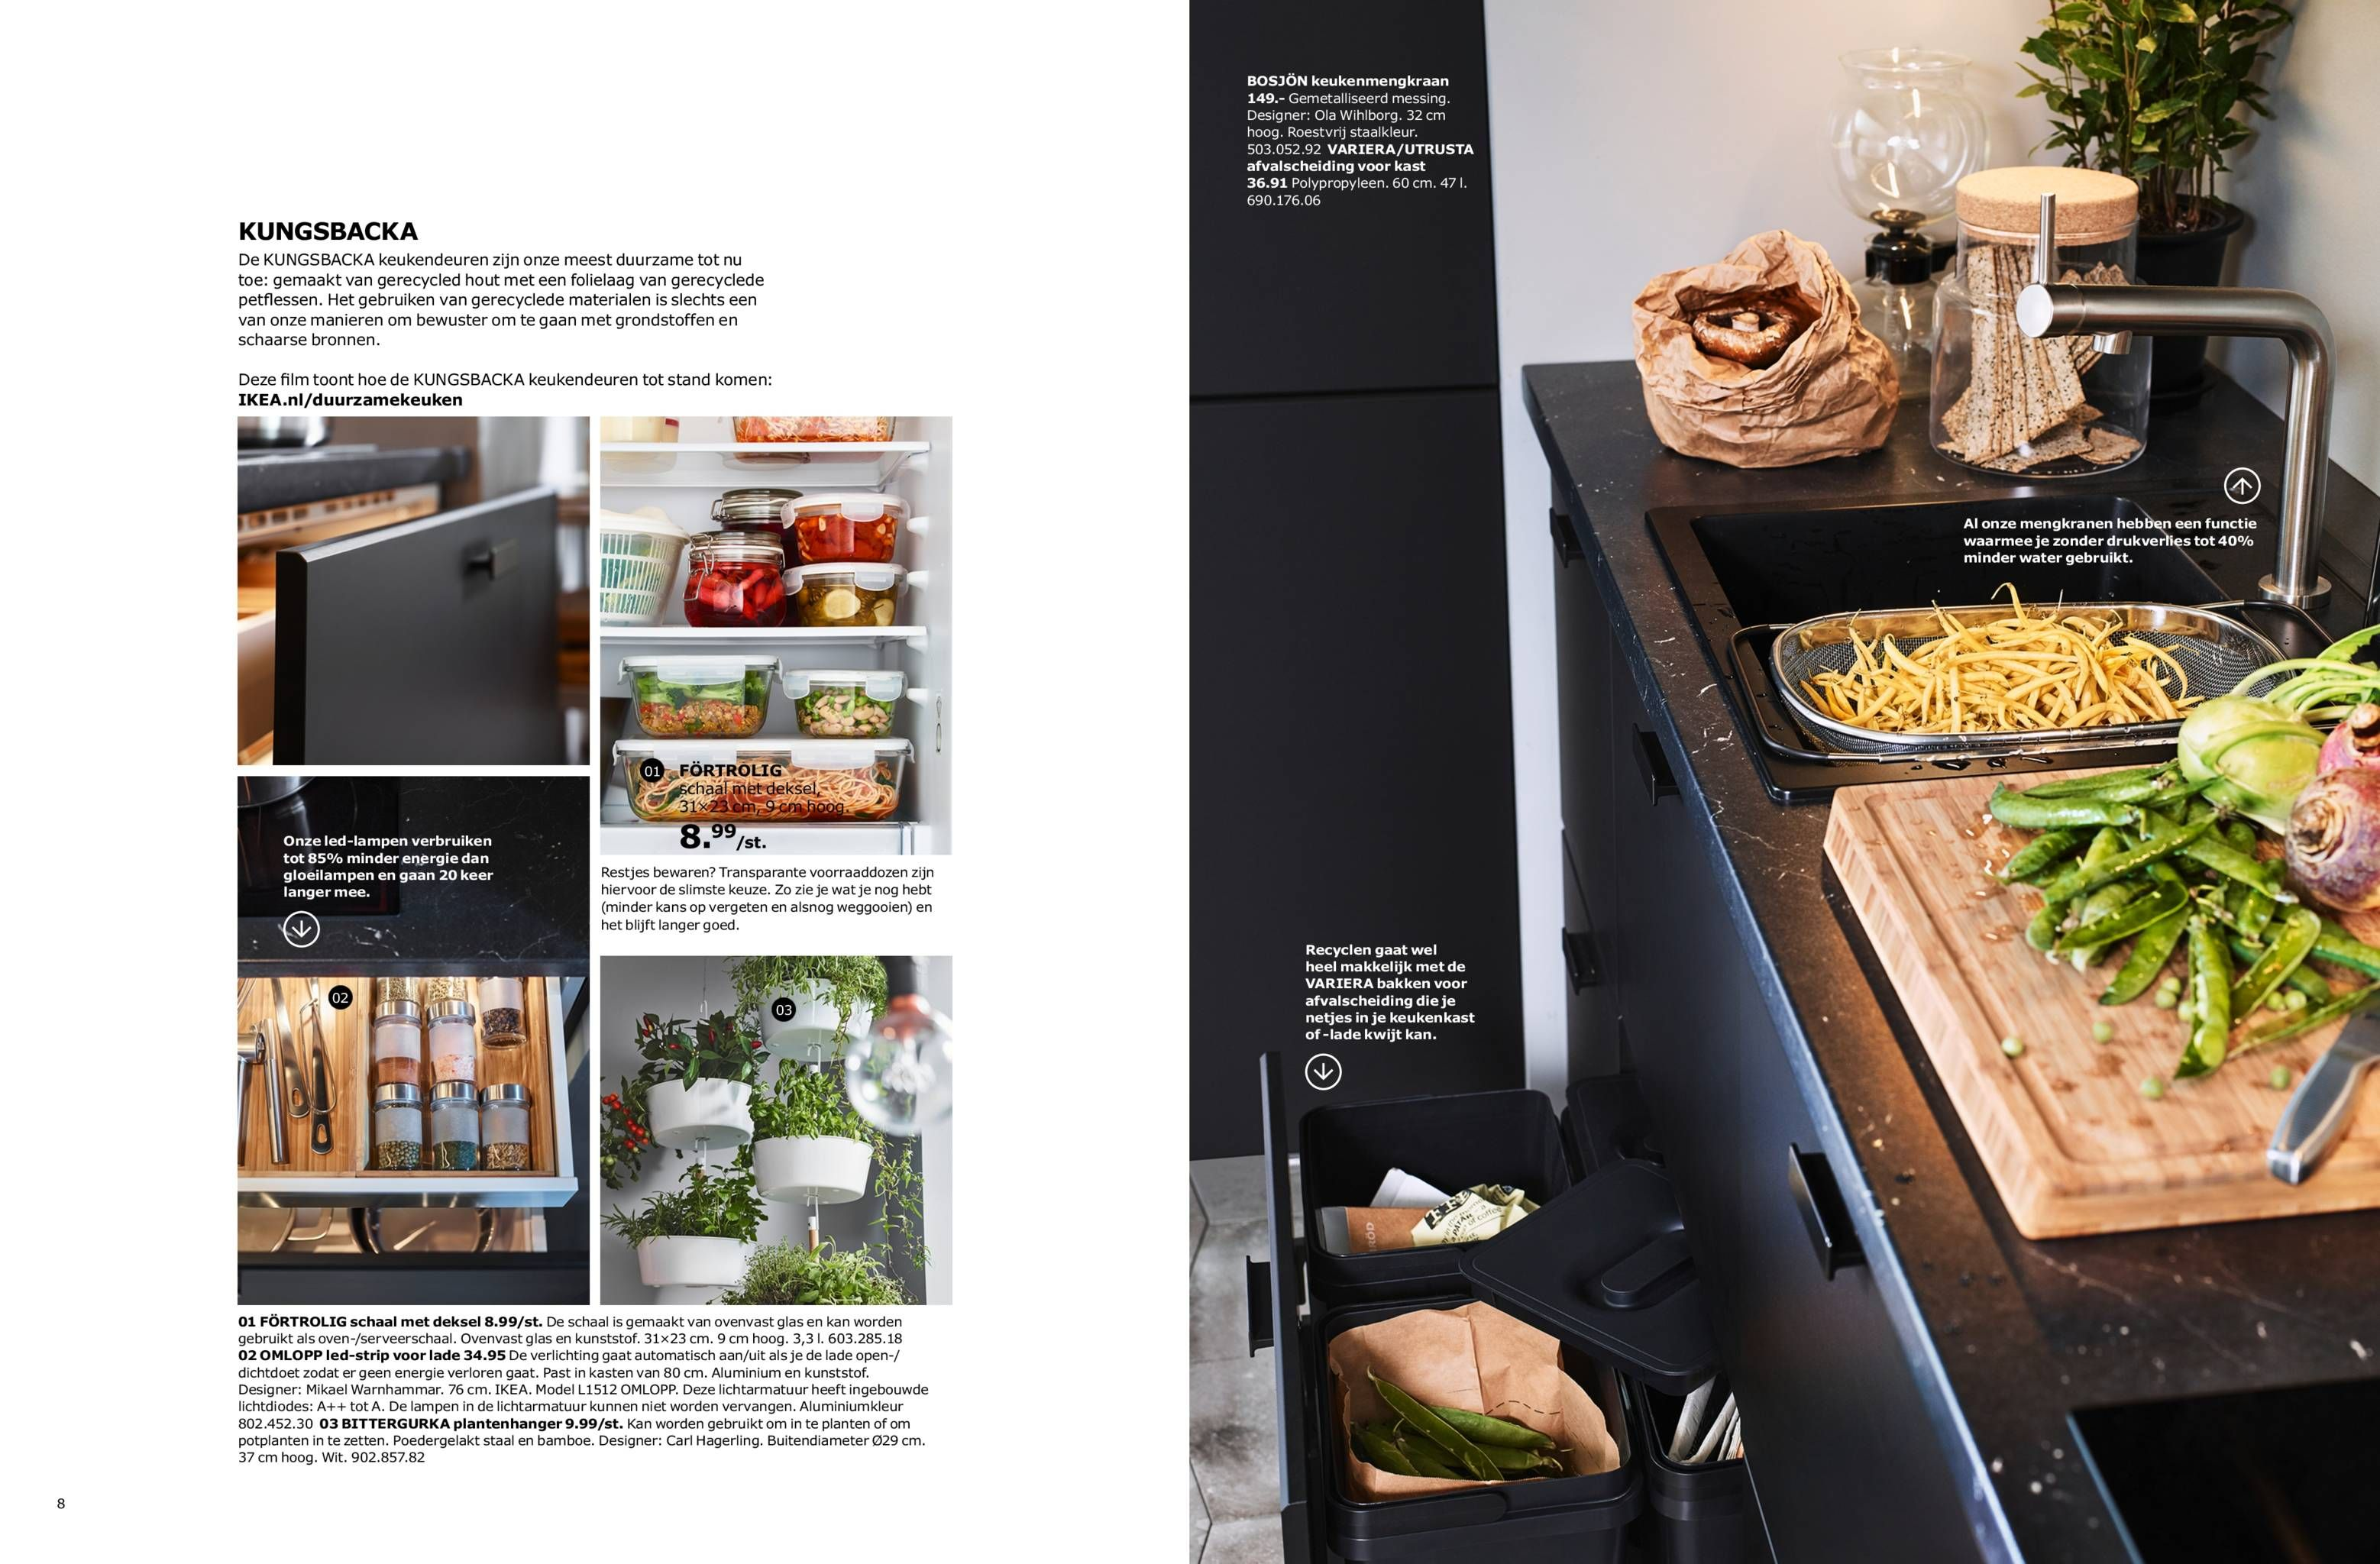 Polypropyleen Keuken Brochure Keukens Keuken In 2018 Pinterest Kitchen Ikea